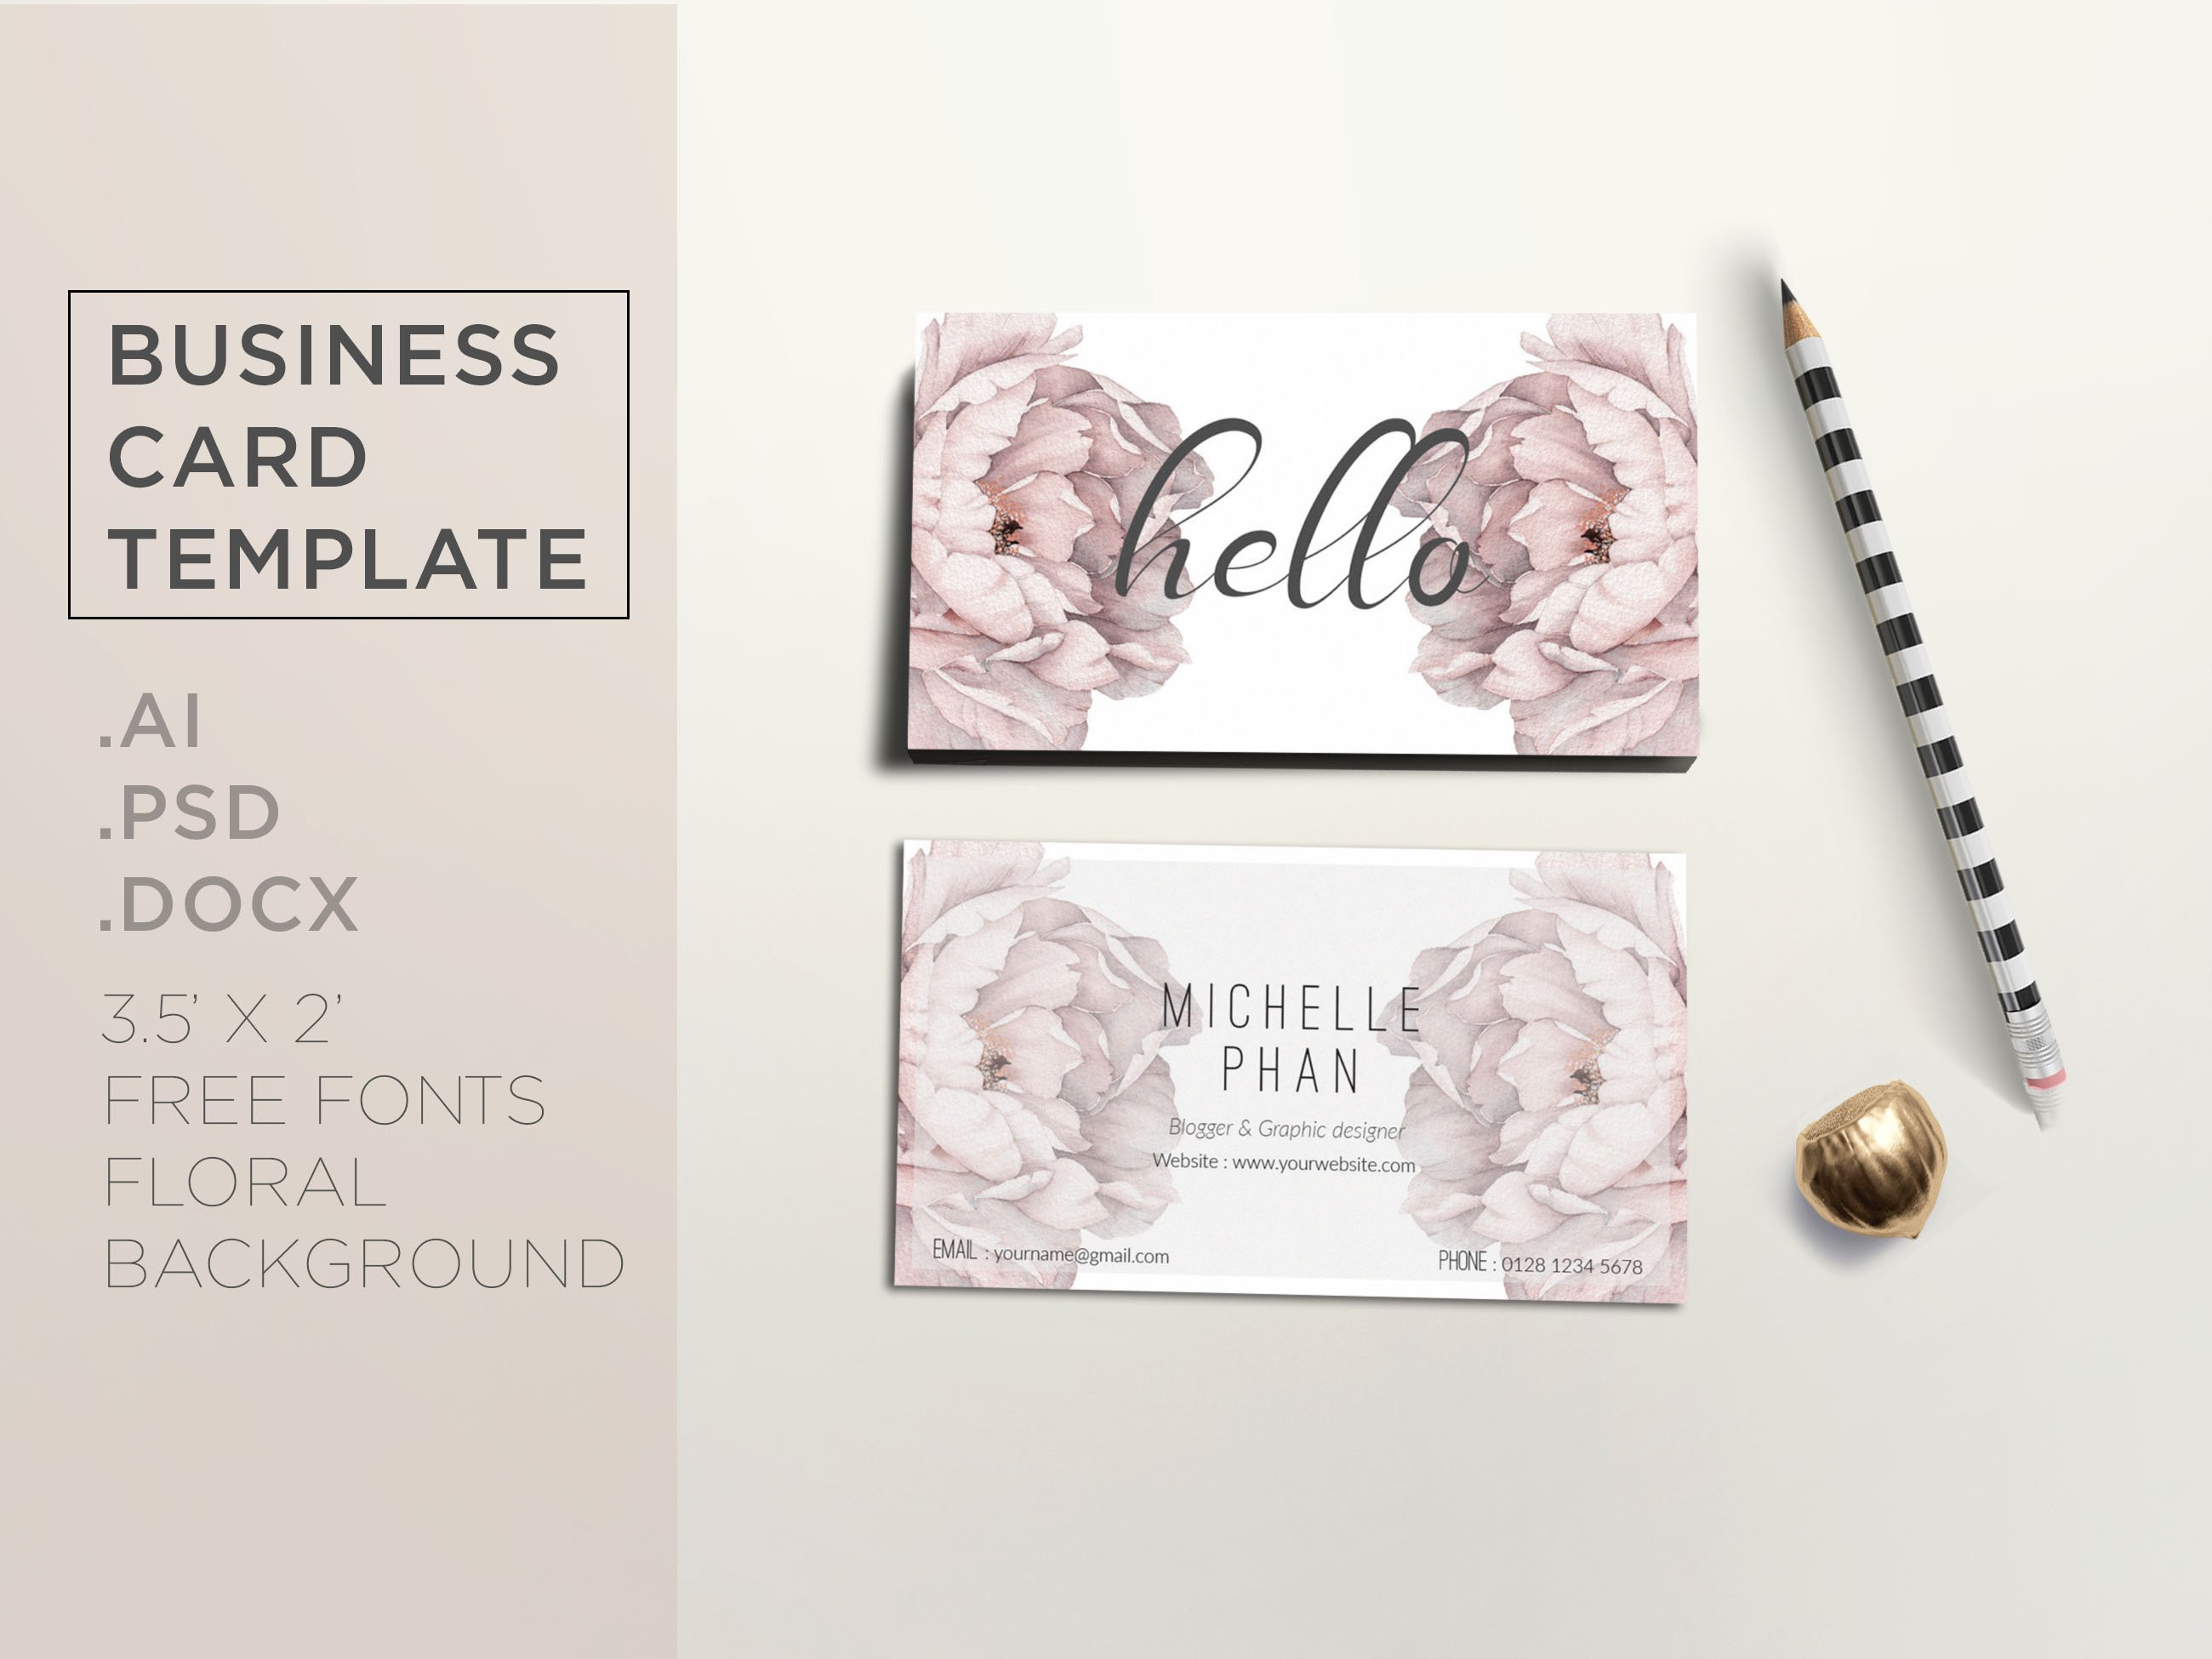 Elegant business card template business card templates creative elegant business card template business card templates creative market cheaphphosting Gallery